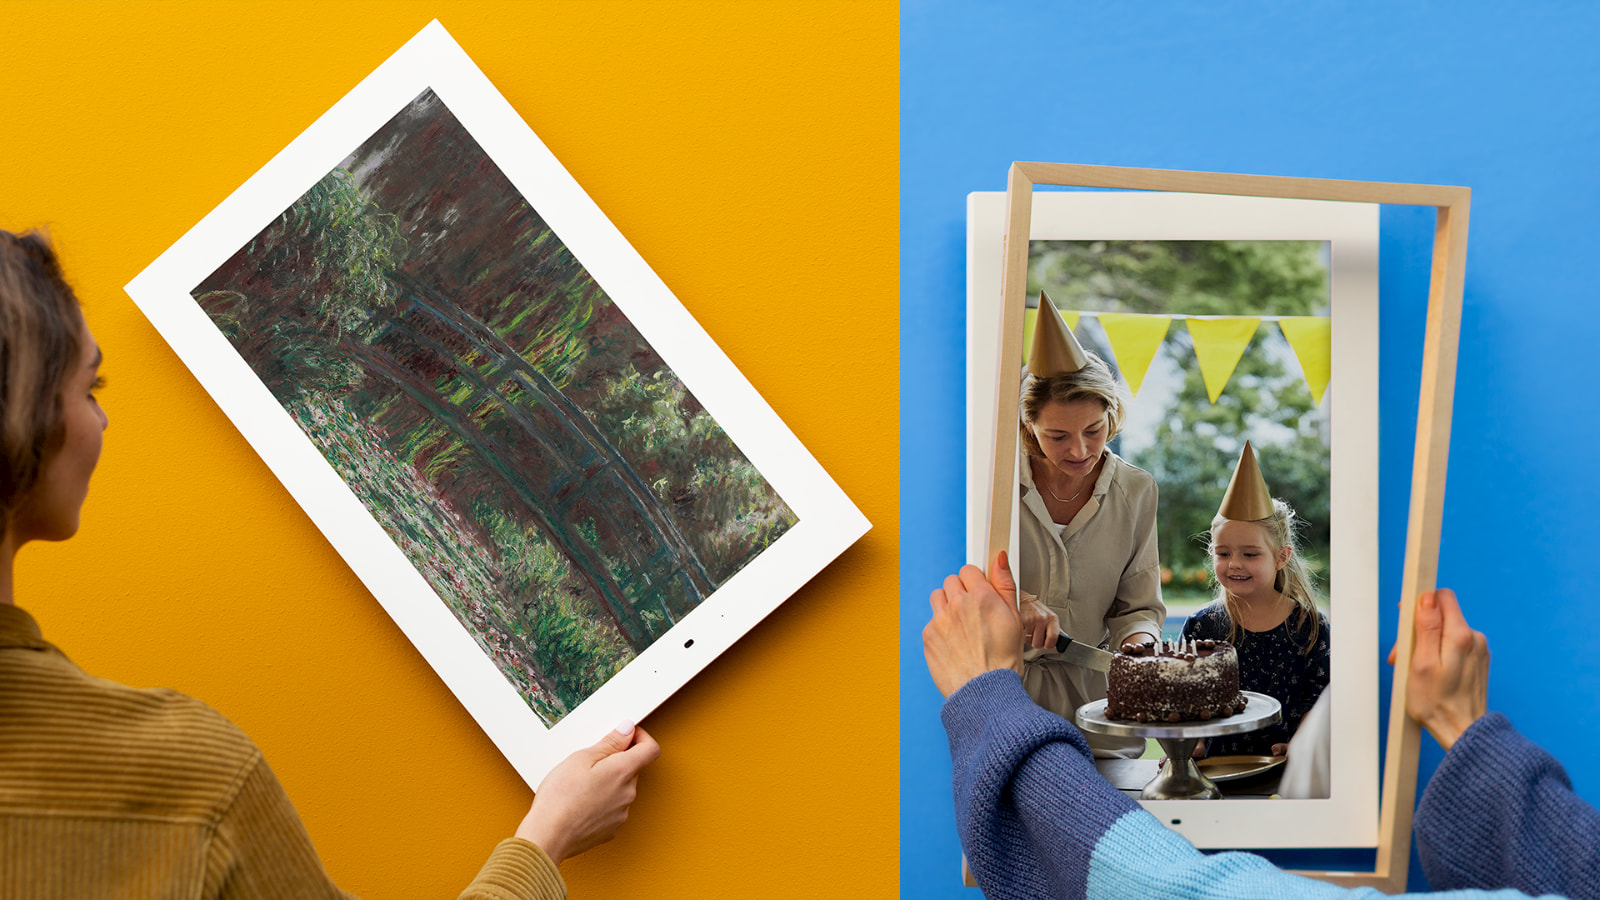 Lenovo's Smart Frame from CES is launching with Google Photos integration